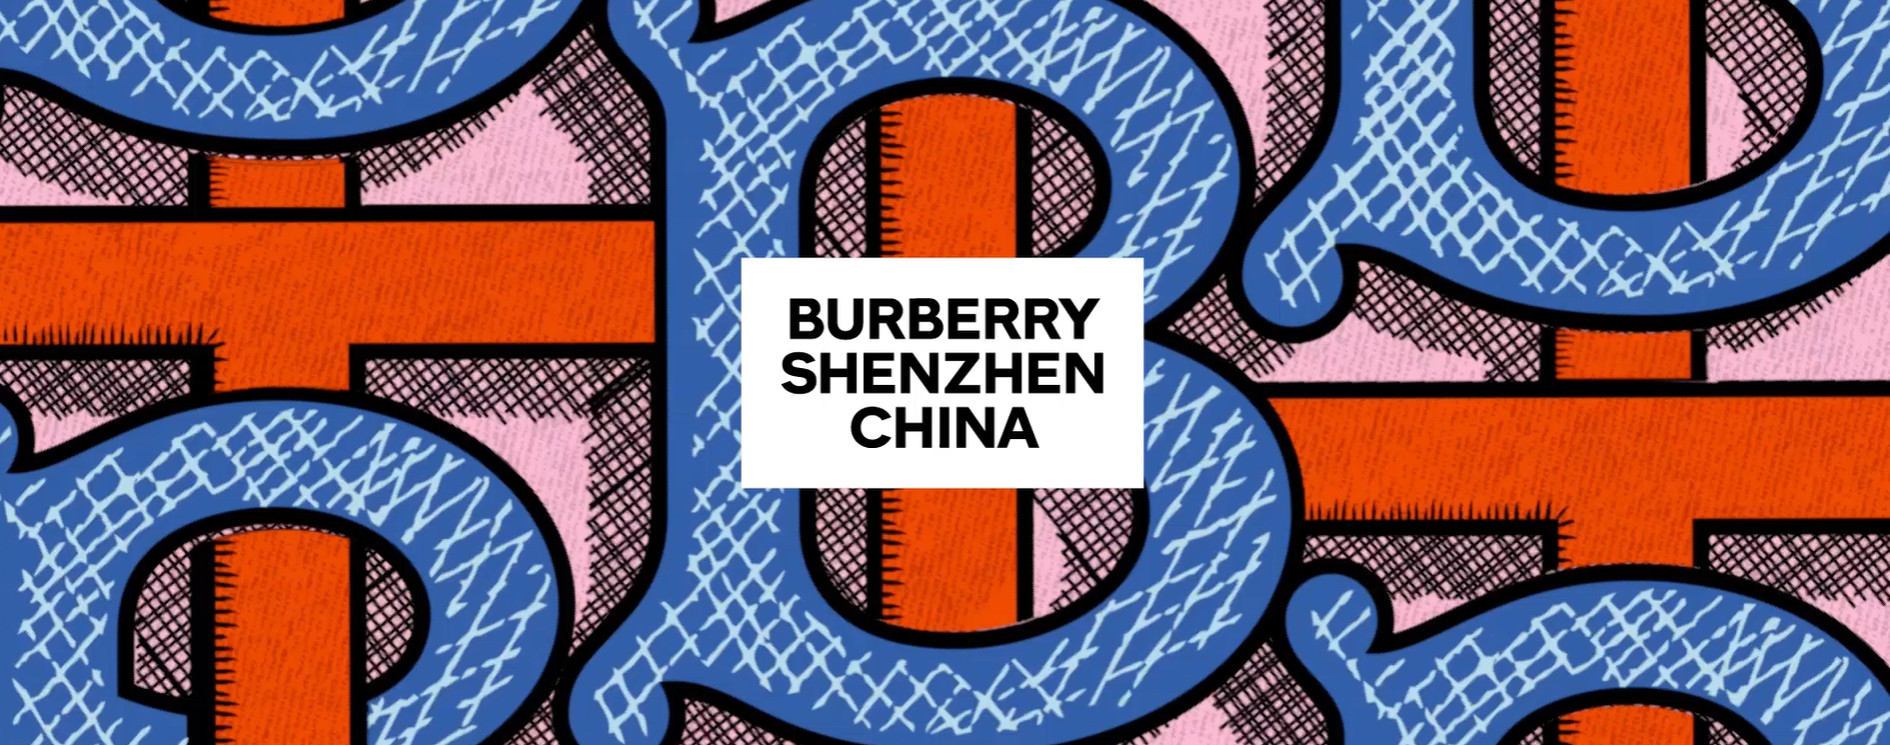 Burberry debuts luxury's first social retail store in Shenzhen, China, powered by Tencent technology